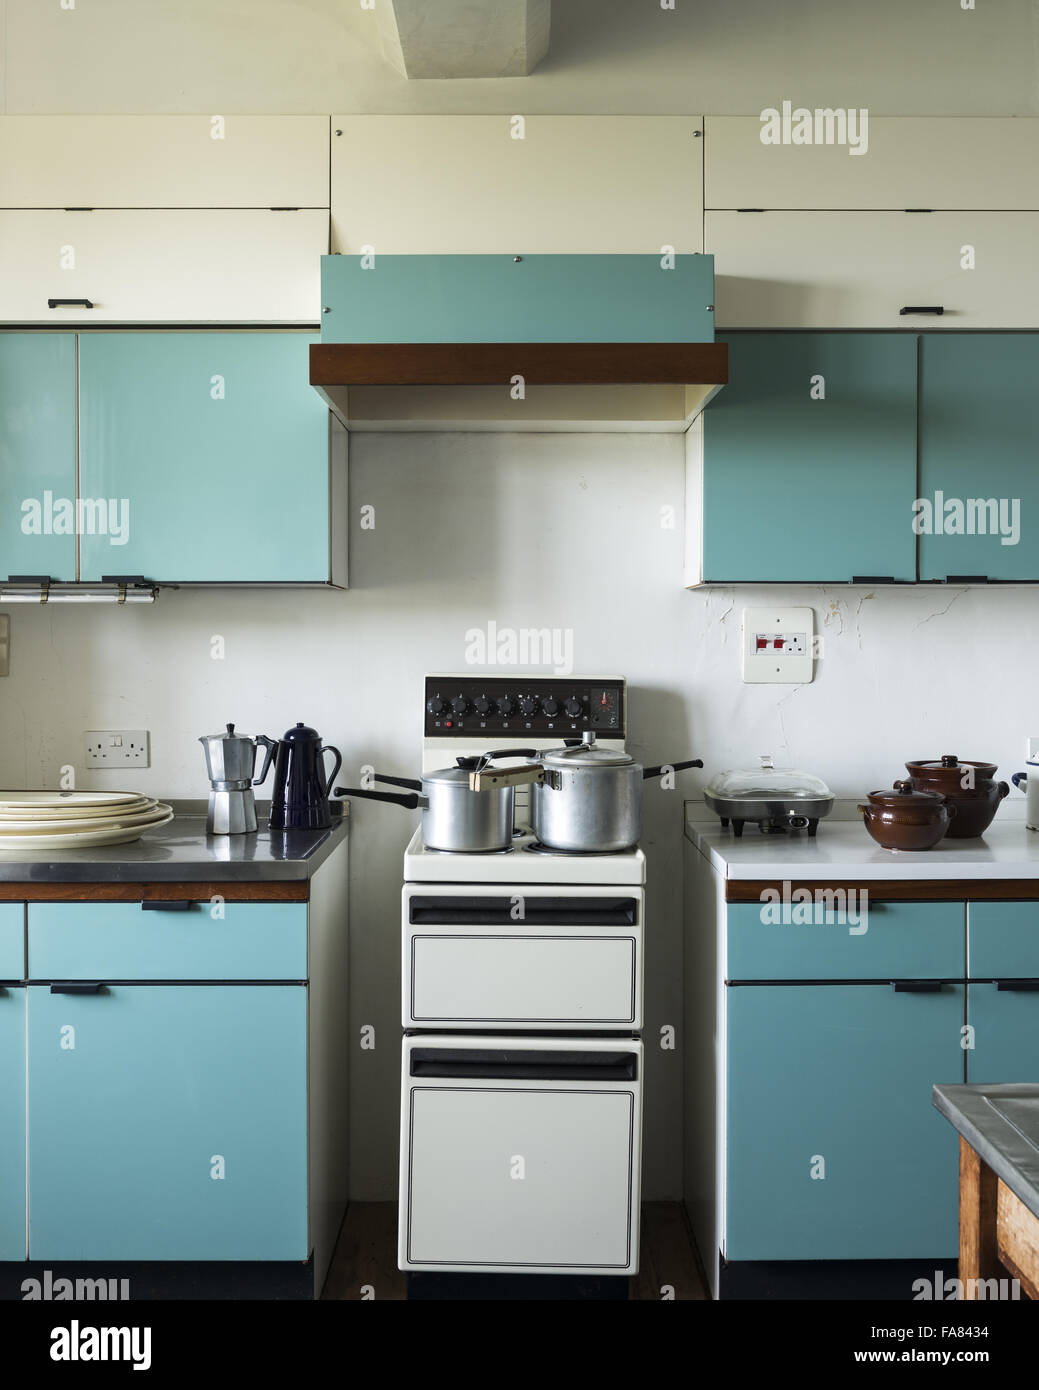 The blue kitchen at dunster castle somerset with electric cooker and blue 1950s kitchen